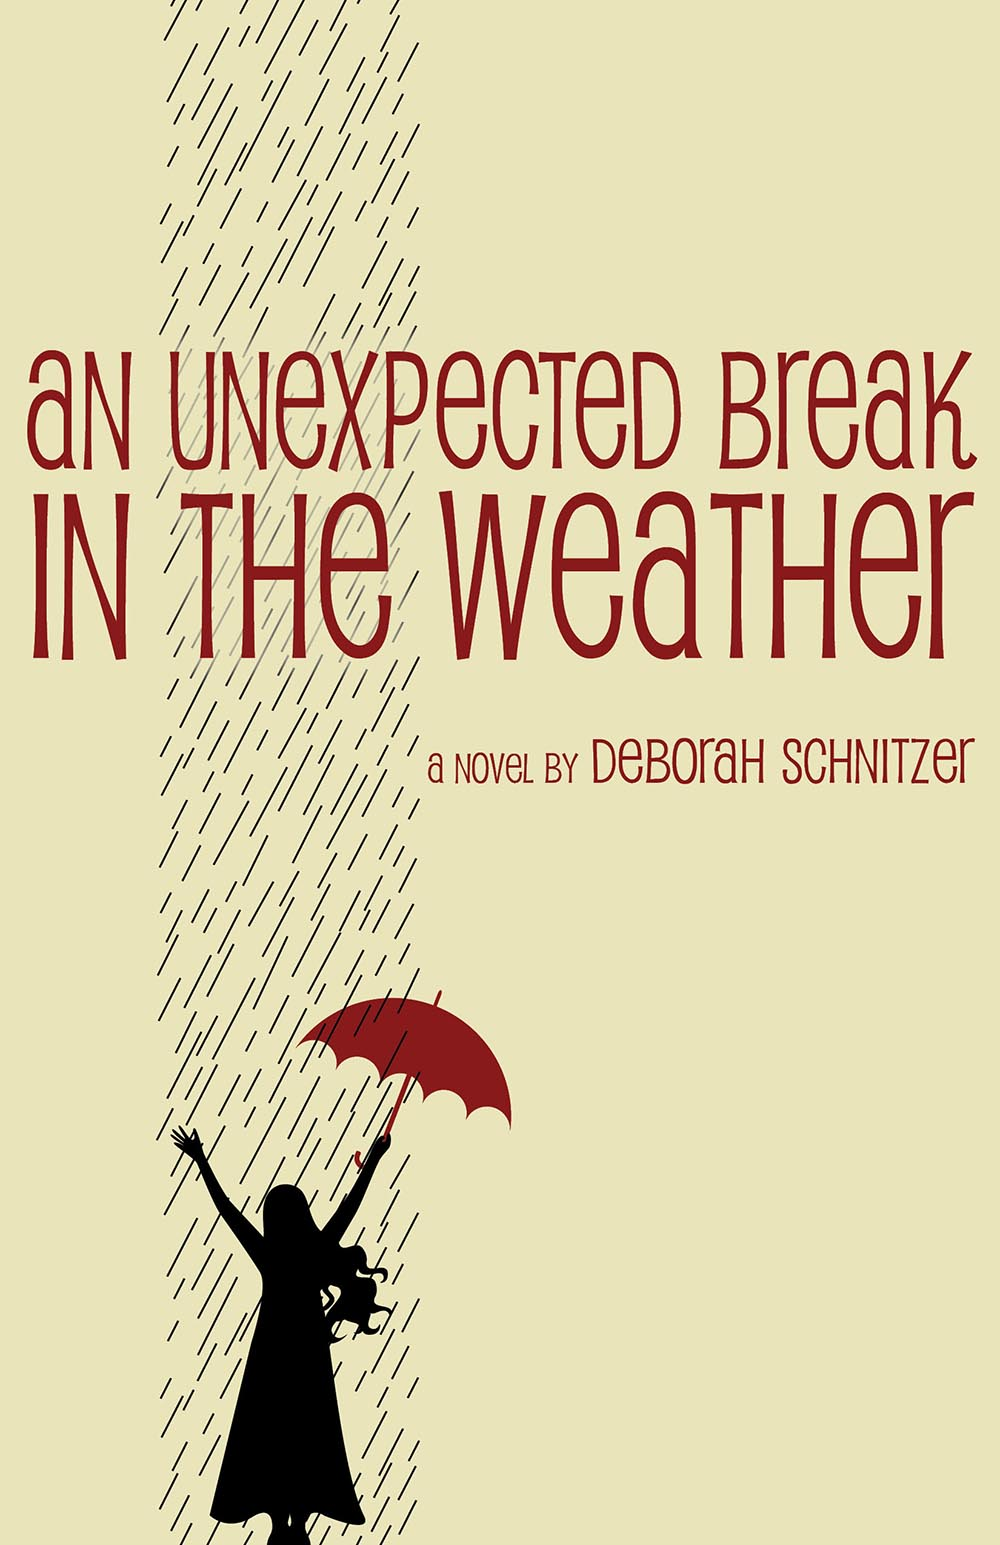 An Unexpected Break in the Weather by Deborah Schnitzer